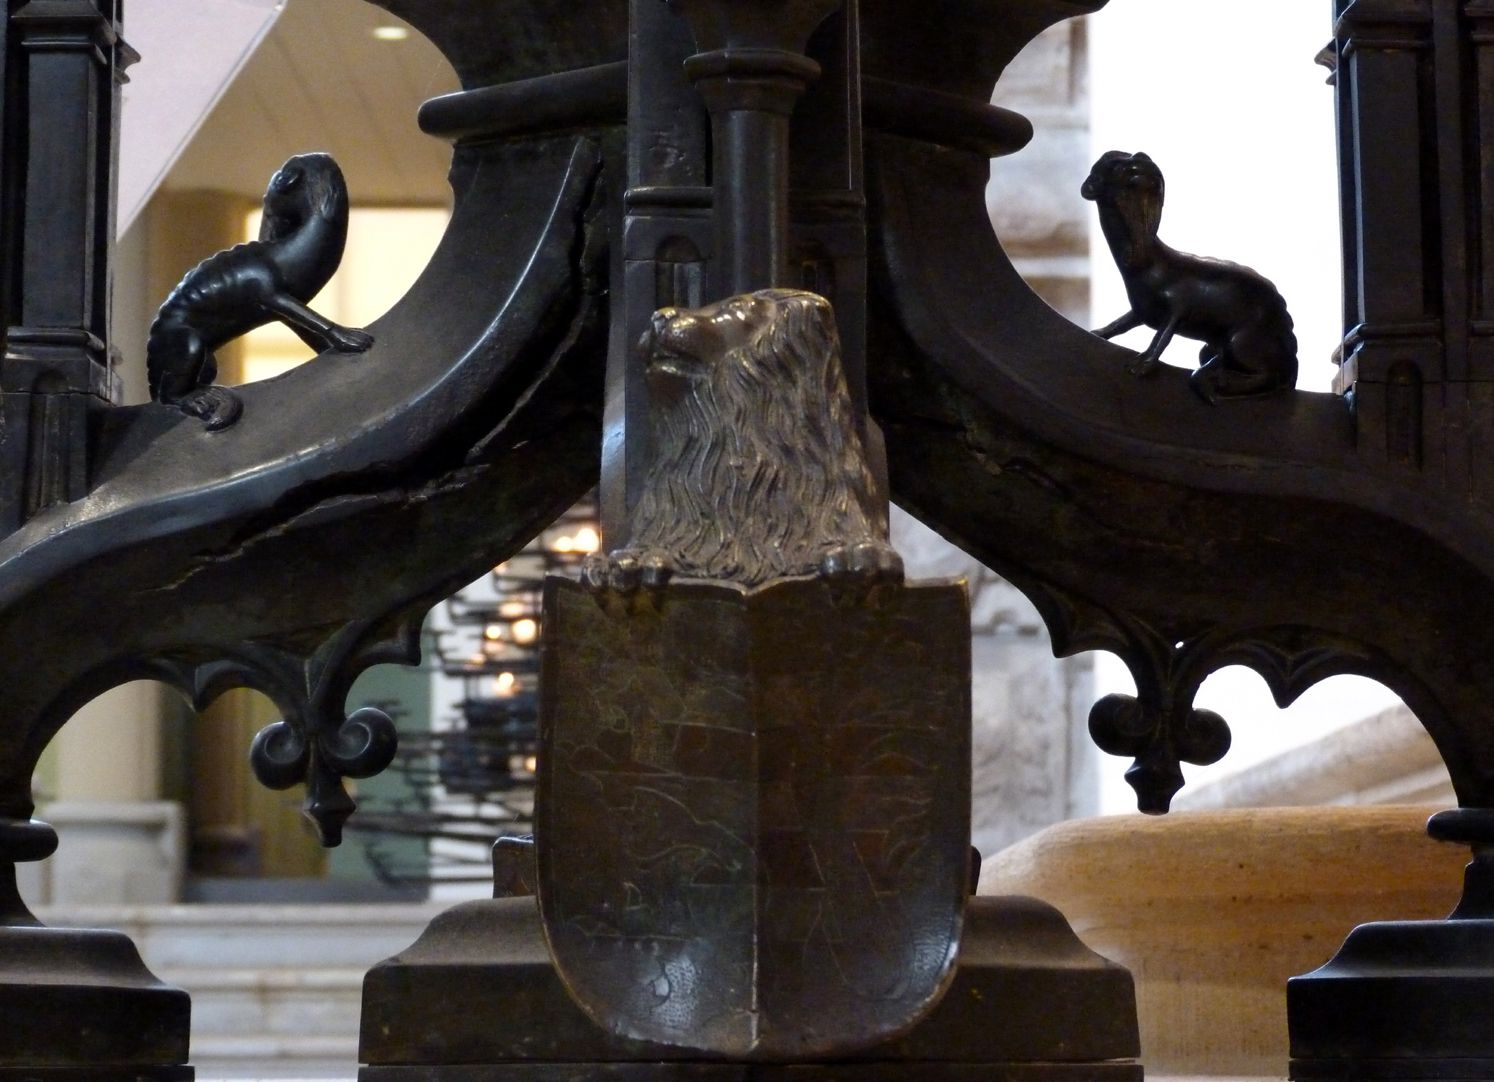 Baptismal font Lion at the pillar basis with Thuringian coat of arms